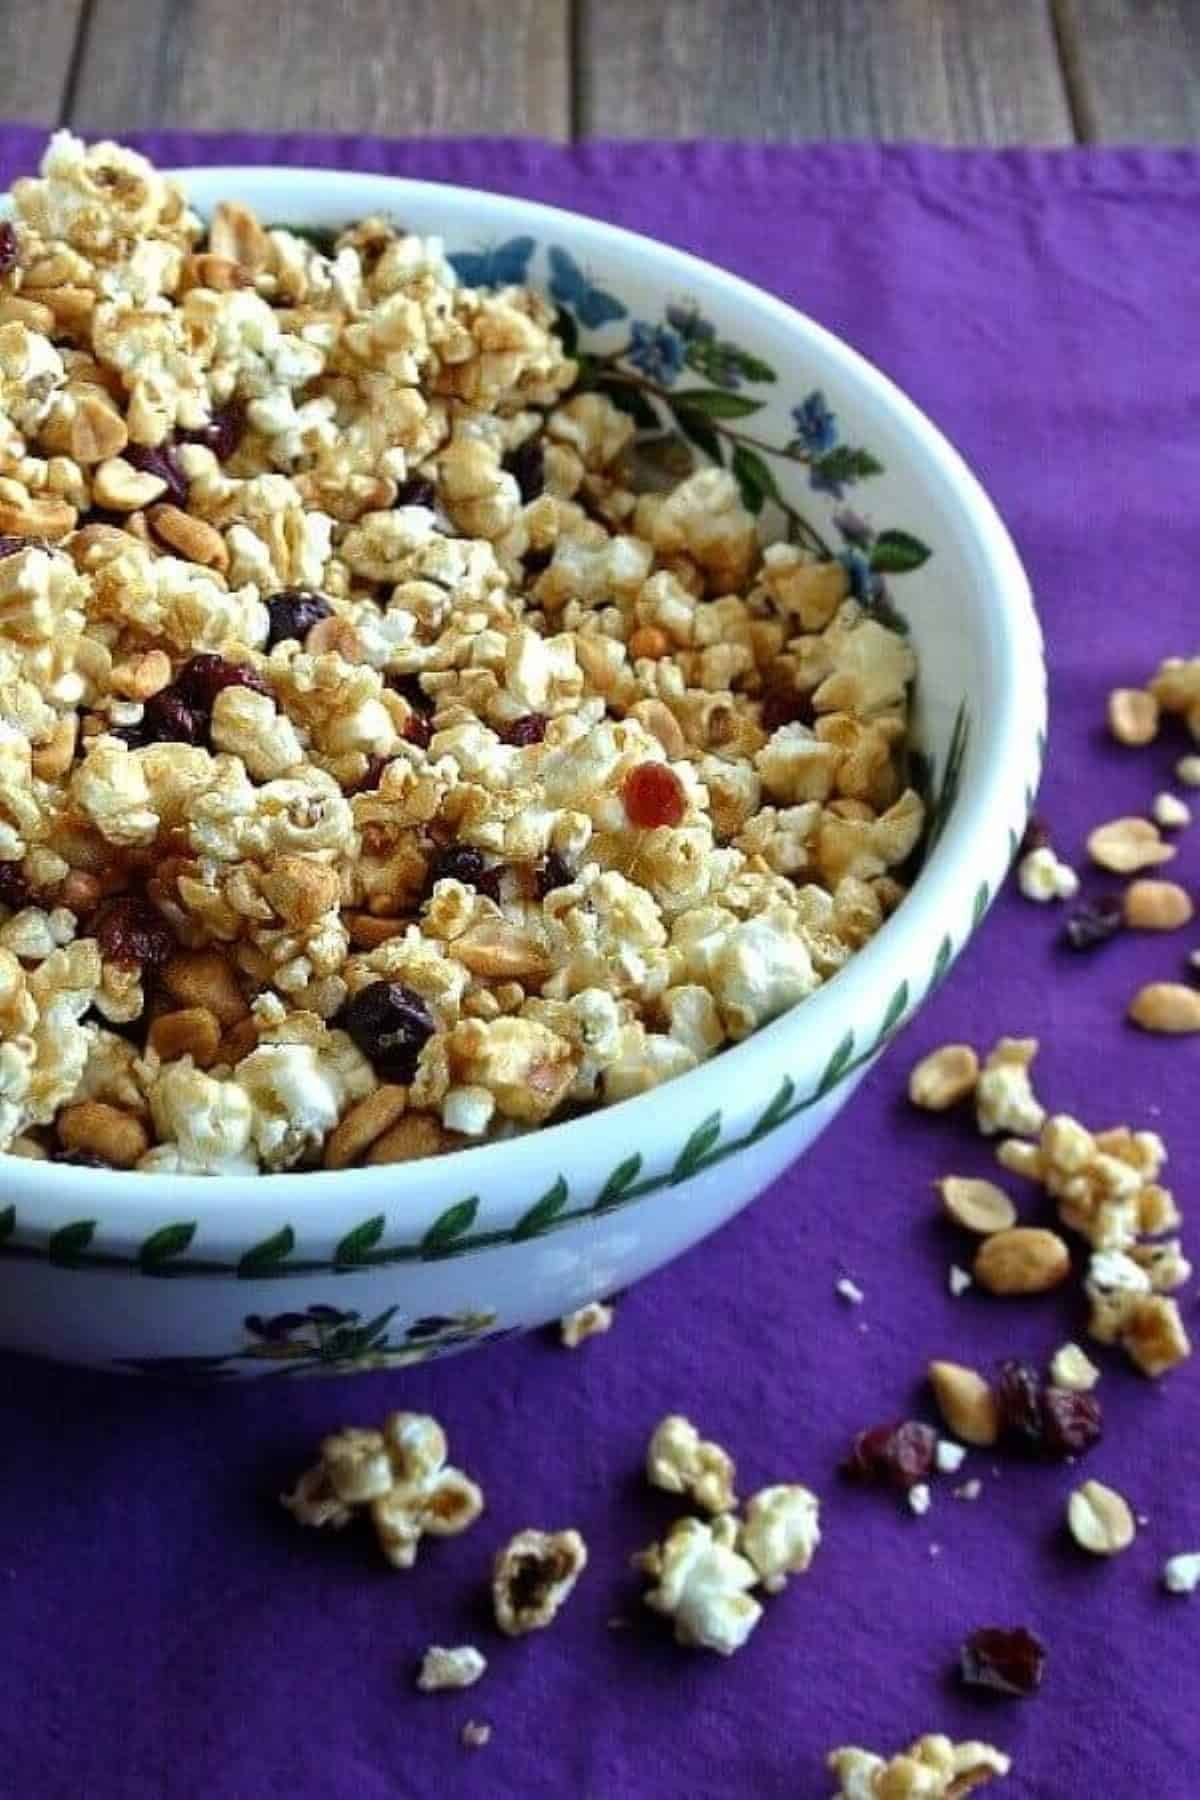 Large heavy bowl filled with easy caramel popcorn and spilling over the side.